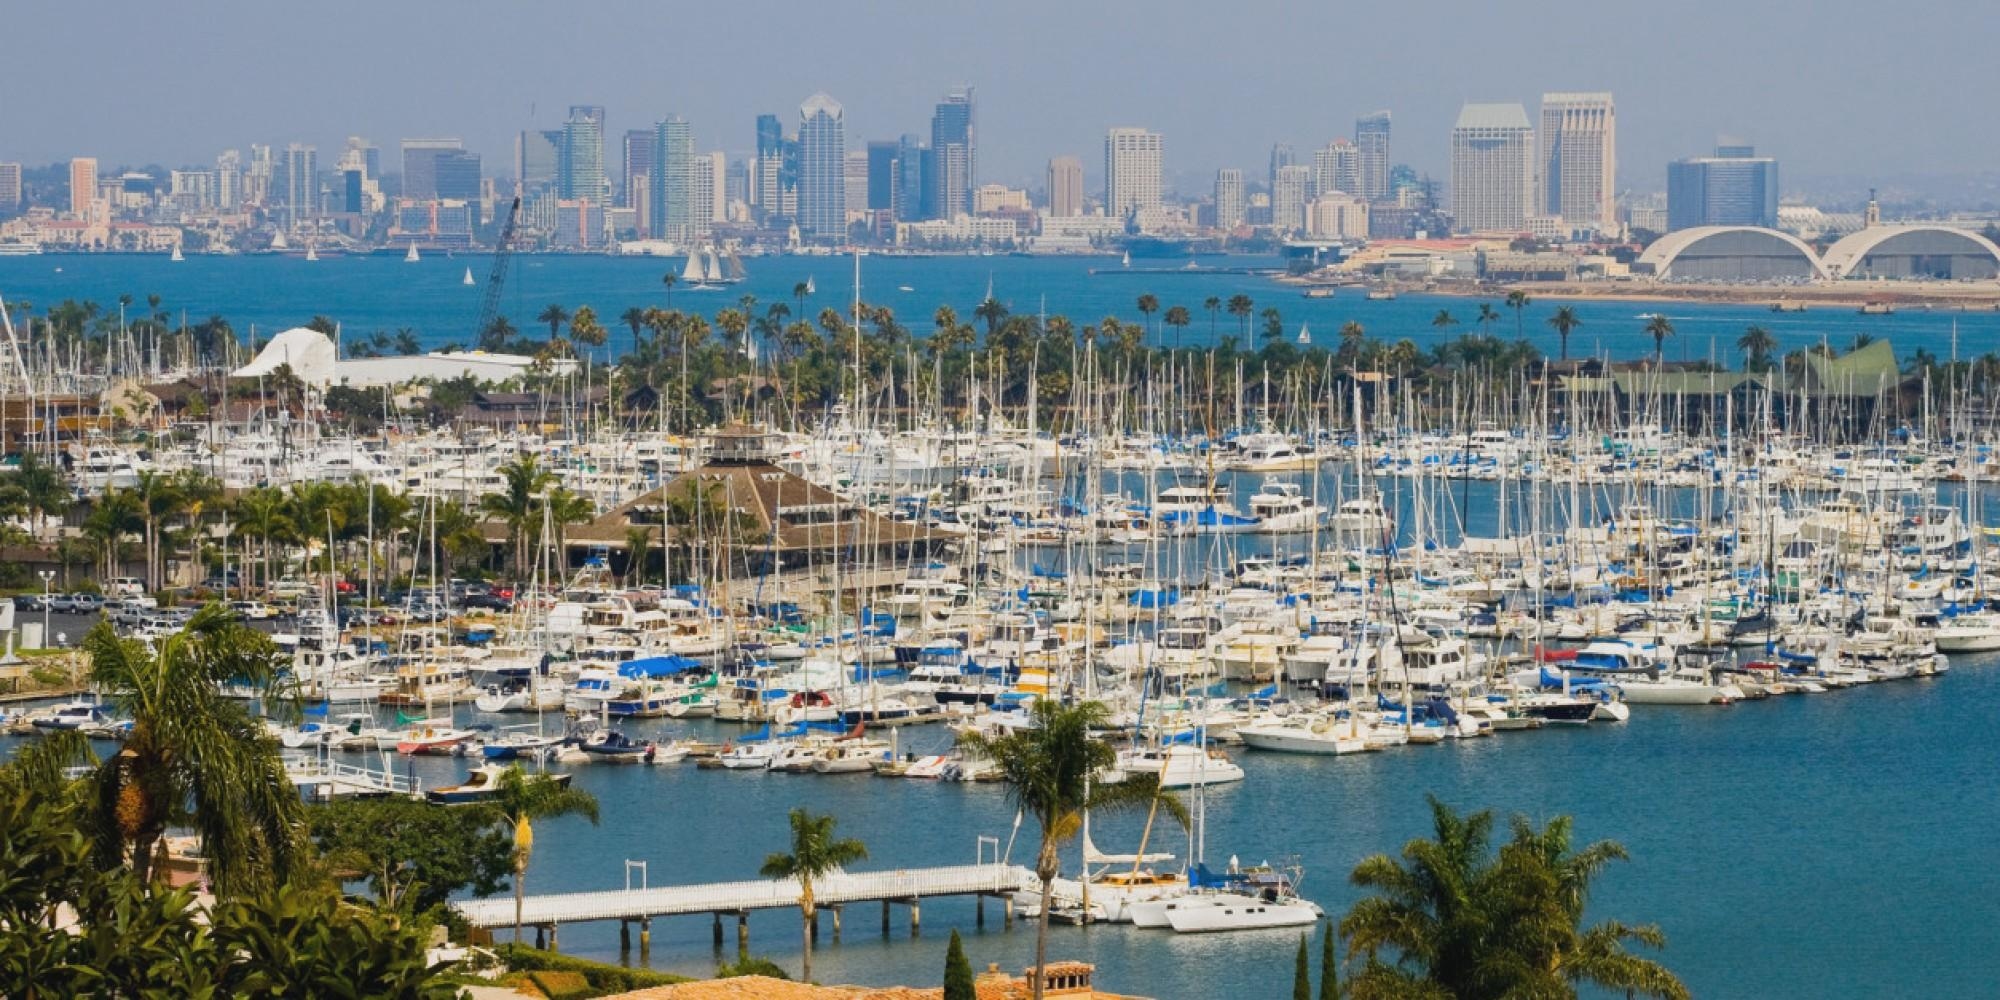 San Diego Wallpaper Hd Posted By Samantha Anderson